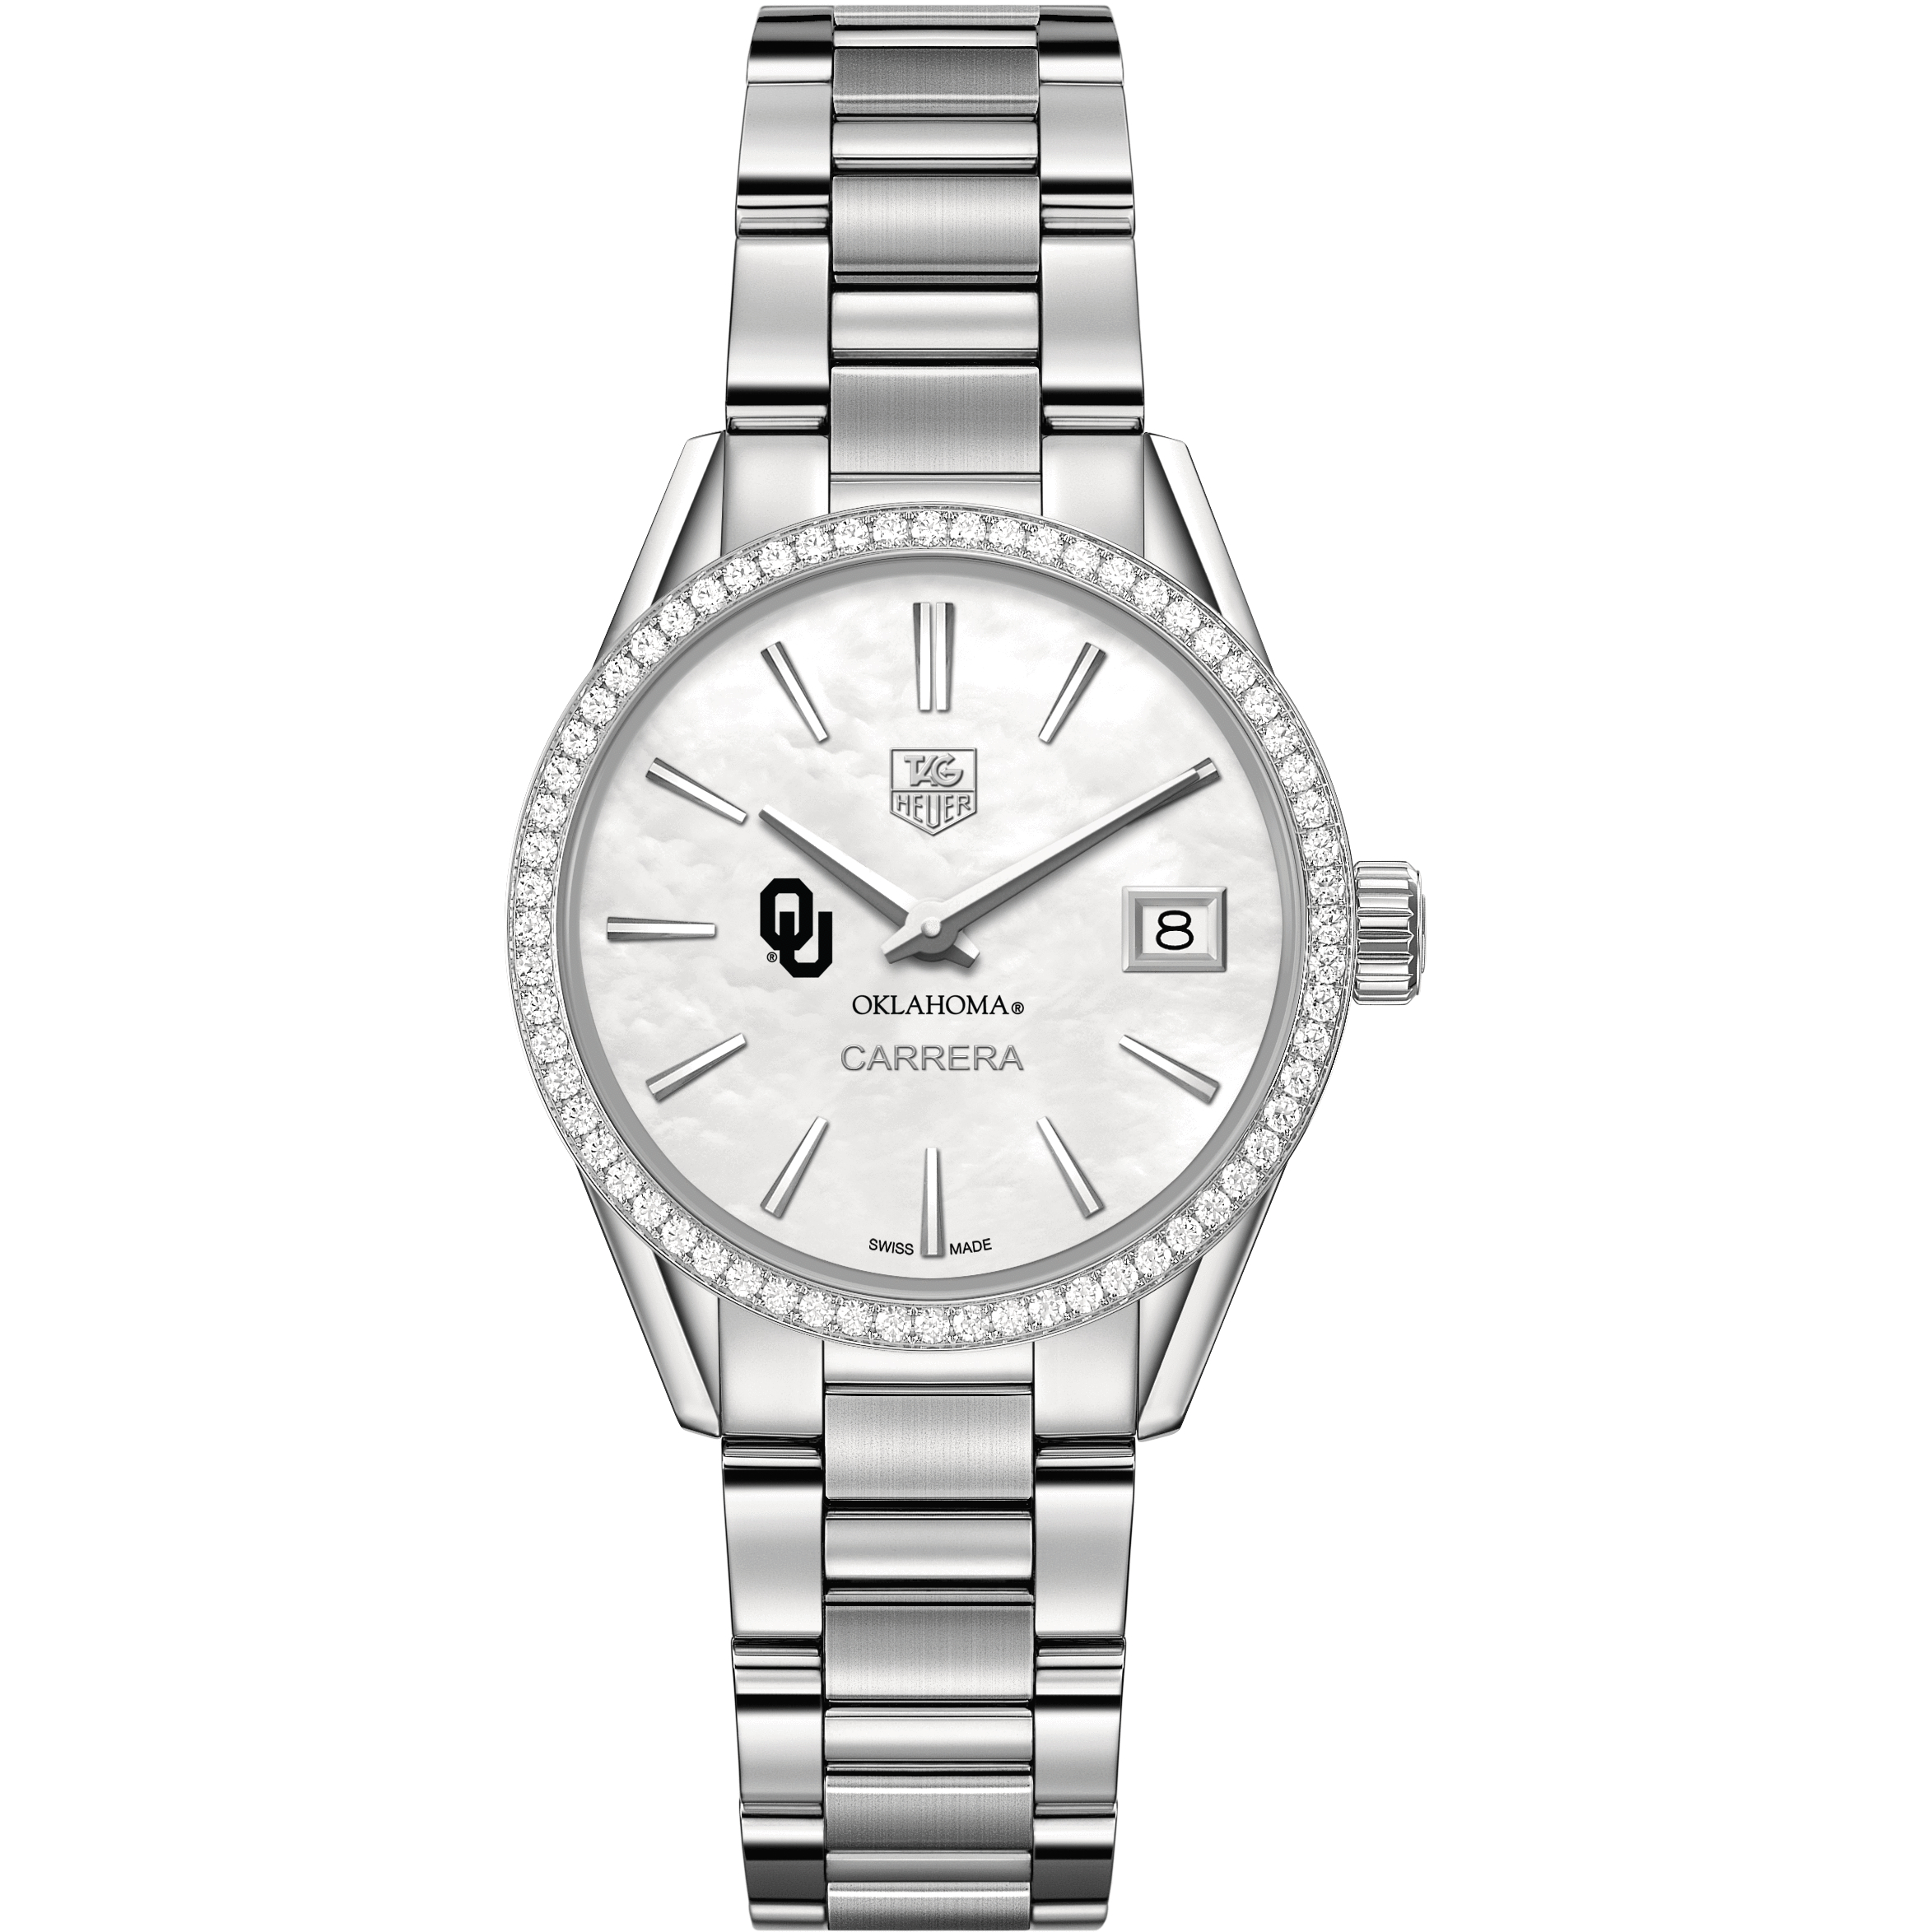 Oklahoma Women's TAG Heuer Steel Carrera with MOP Dial & Diamond Bezel - Image 2